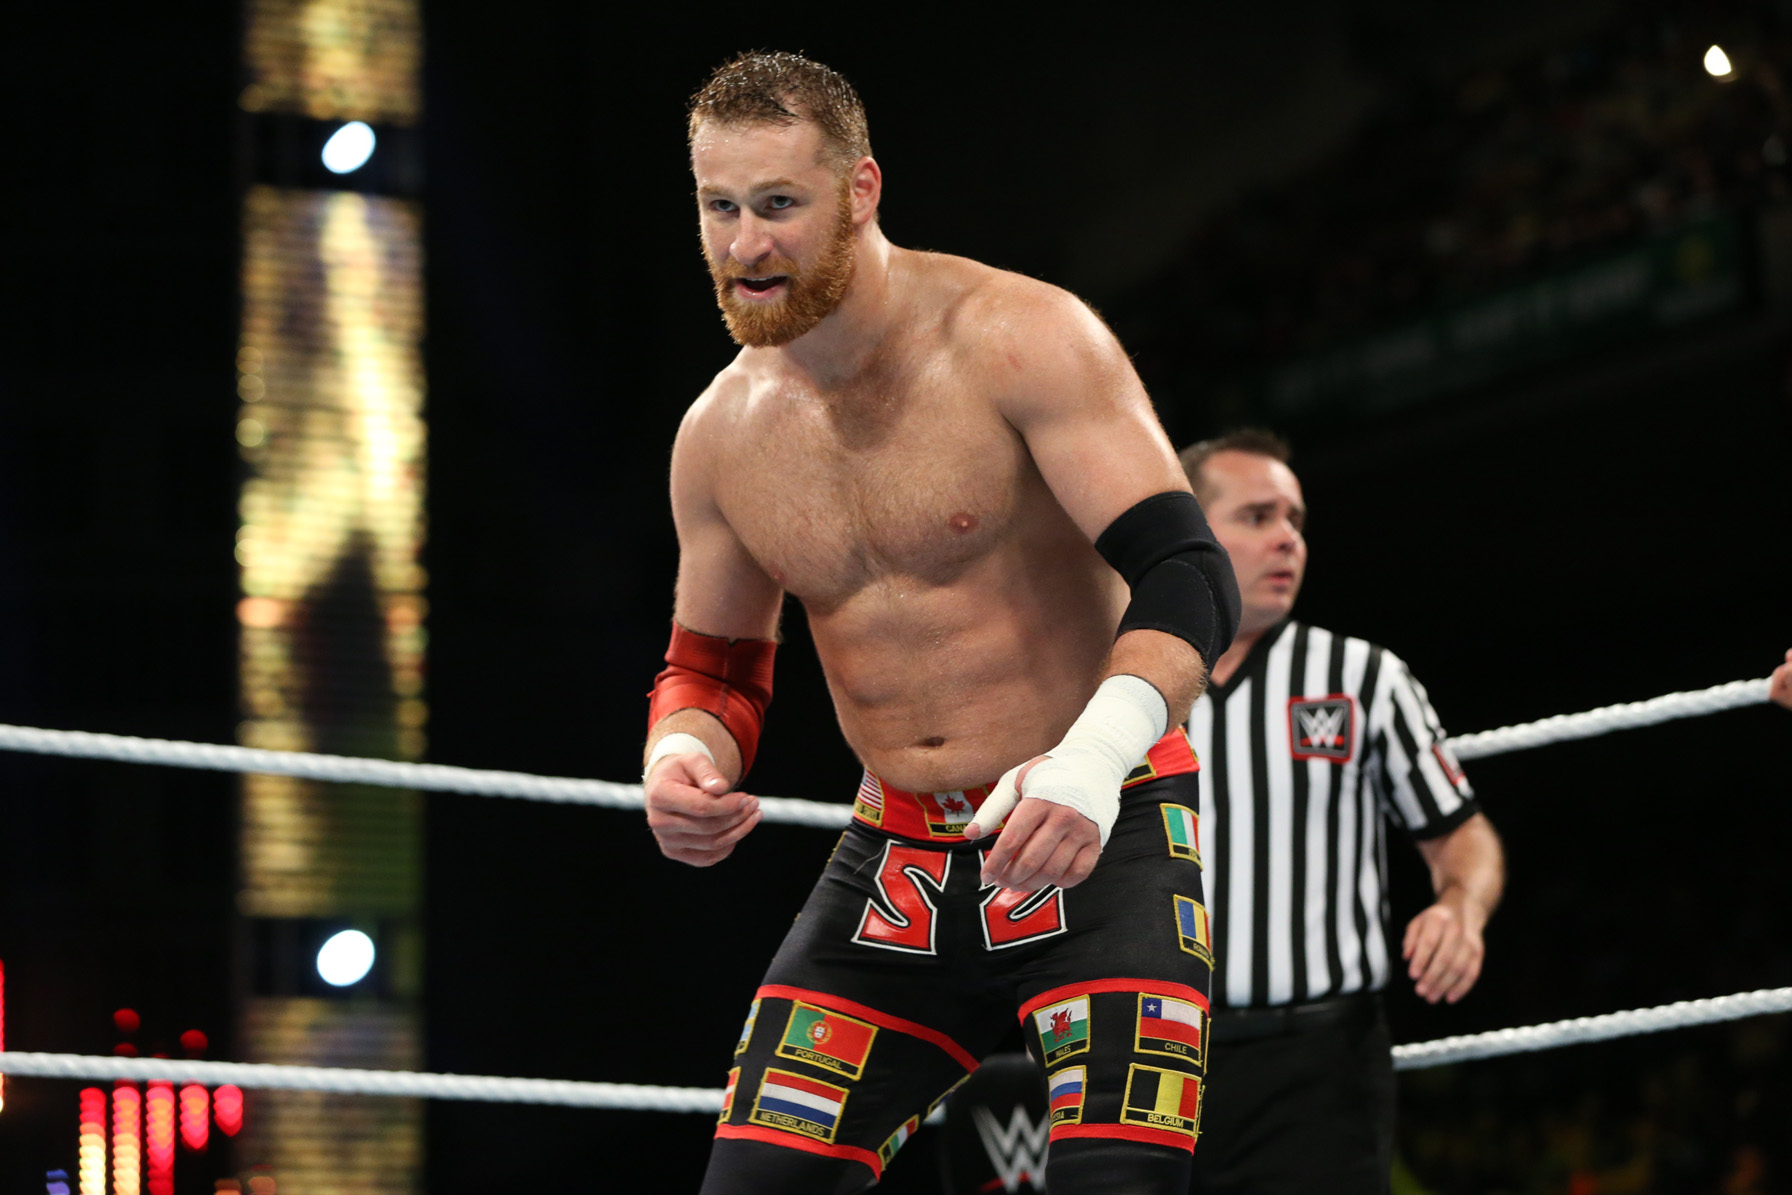 On The Line with Sami Zayn